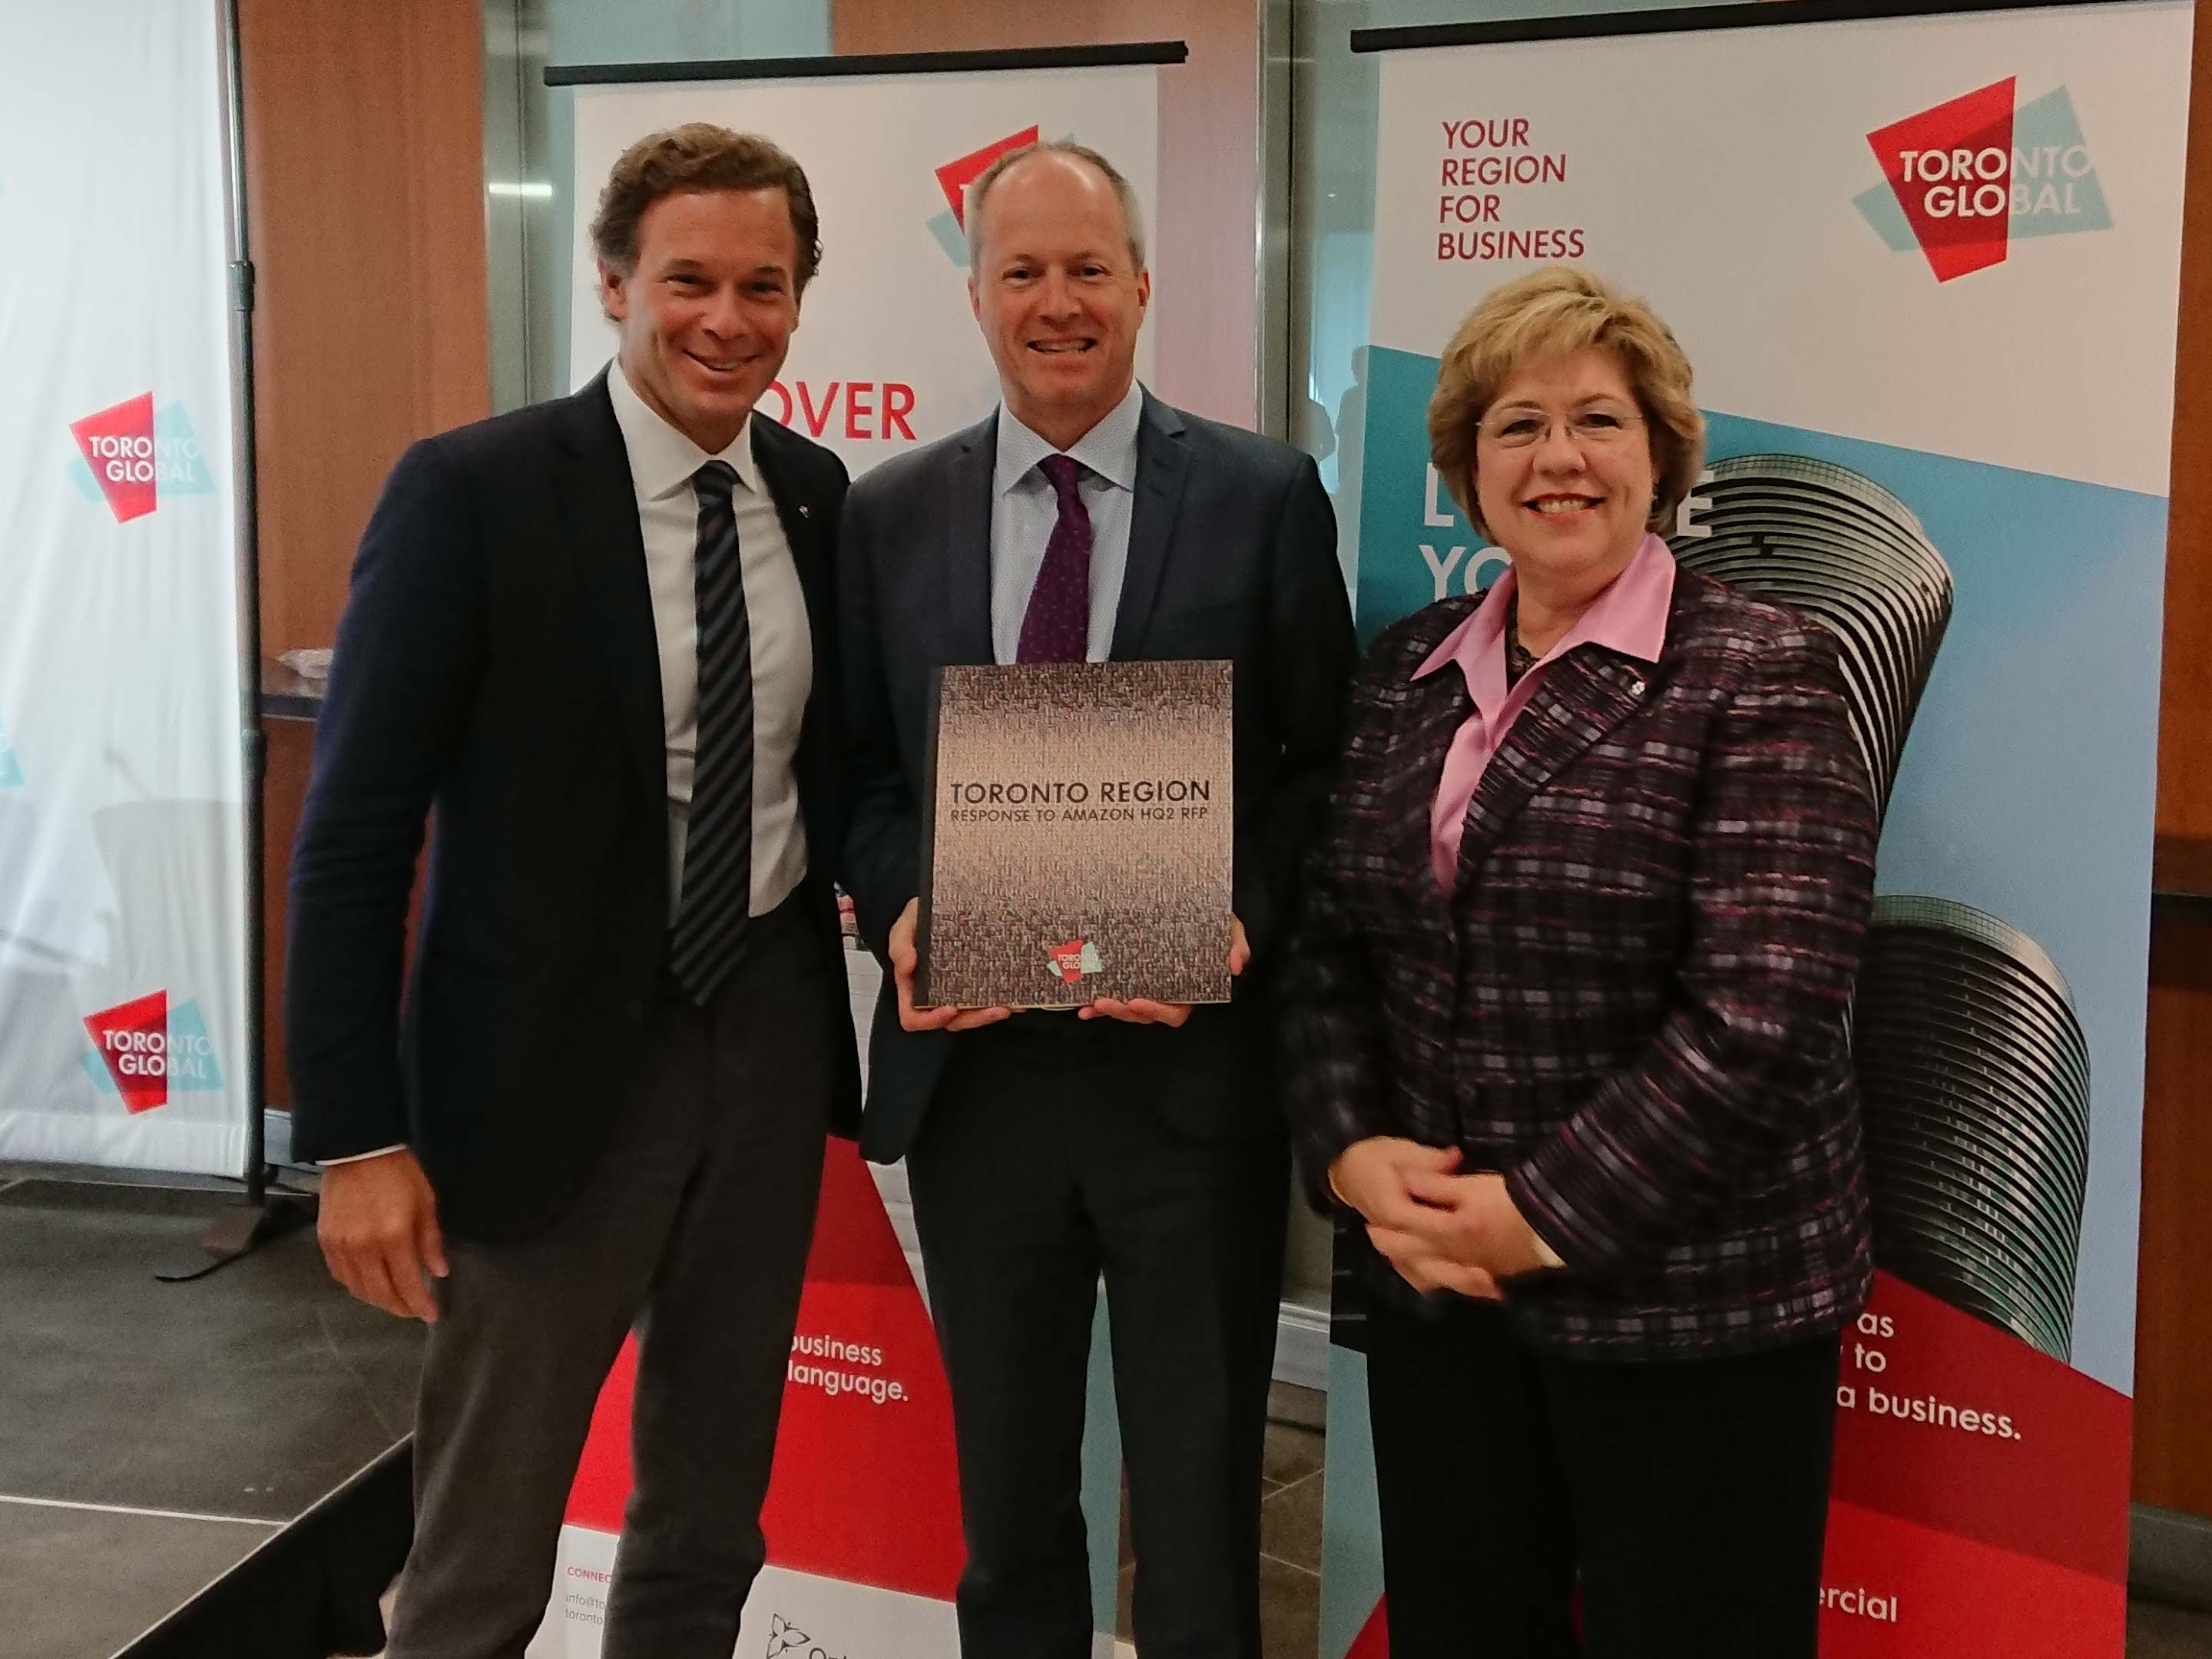 Mark Cohon, Toby Lennox, and Janet Ecker from Toronto Global